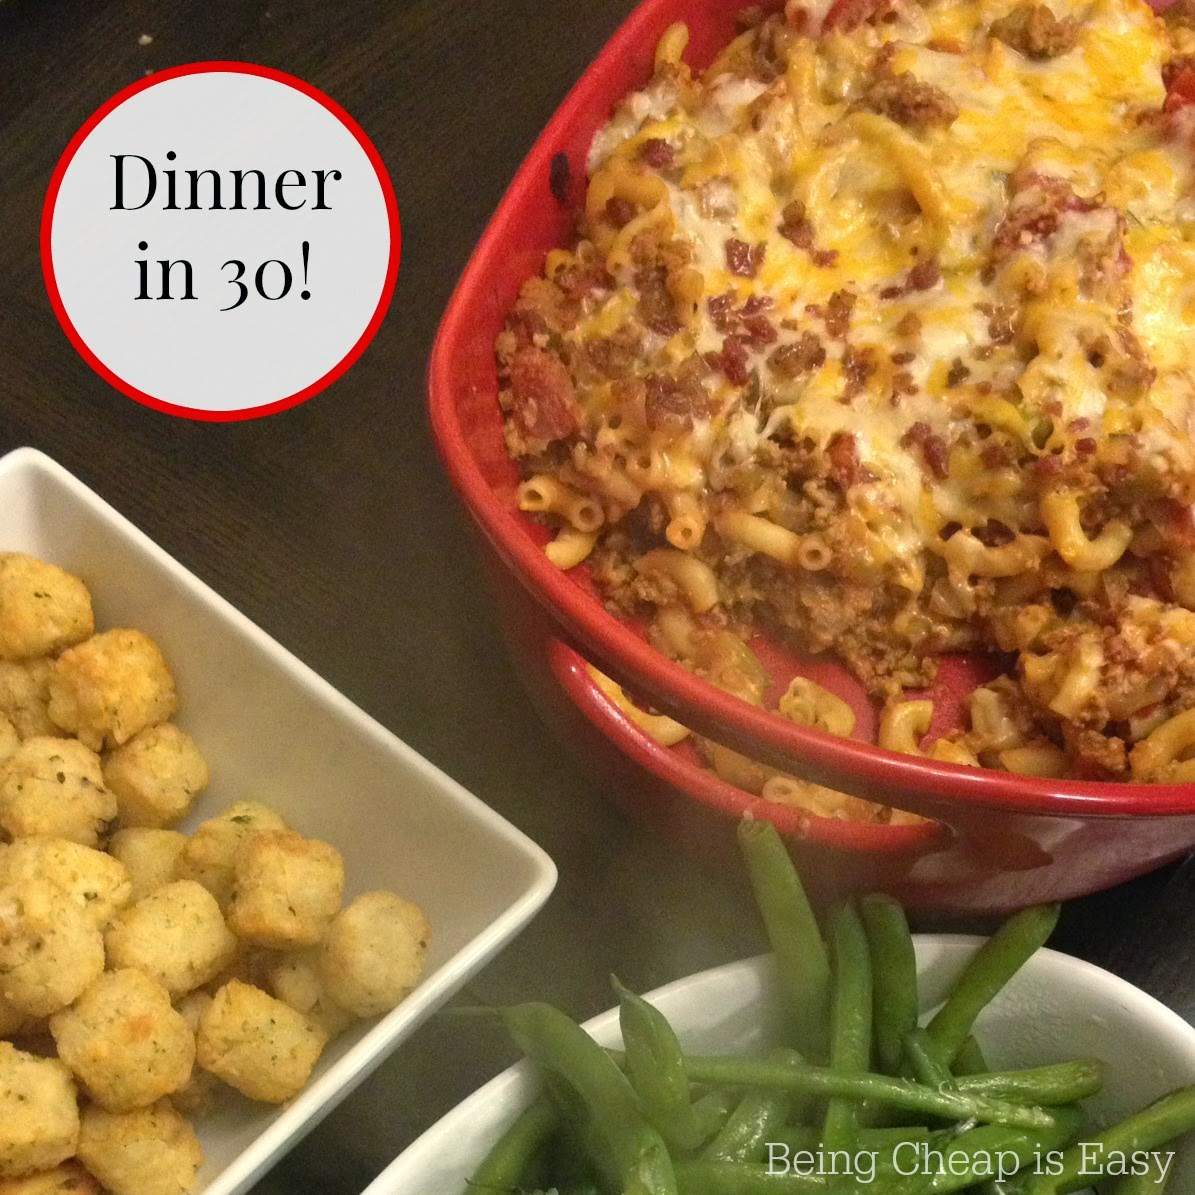 Casseroles, Simple Suppers, Jennie-O Turkey, Cheeseburger